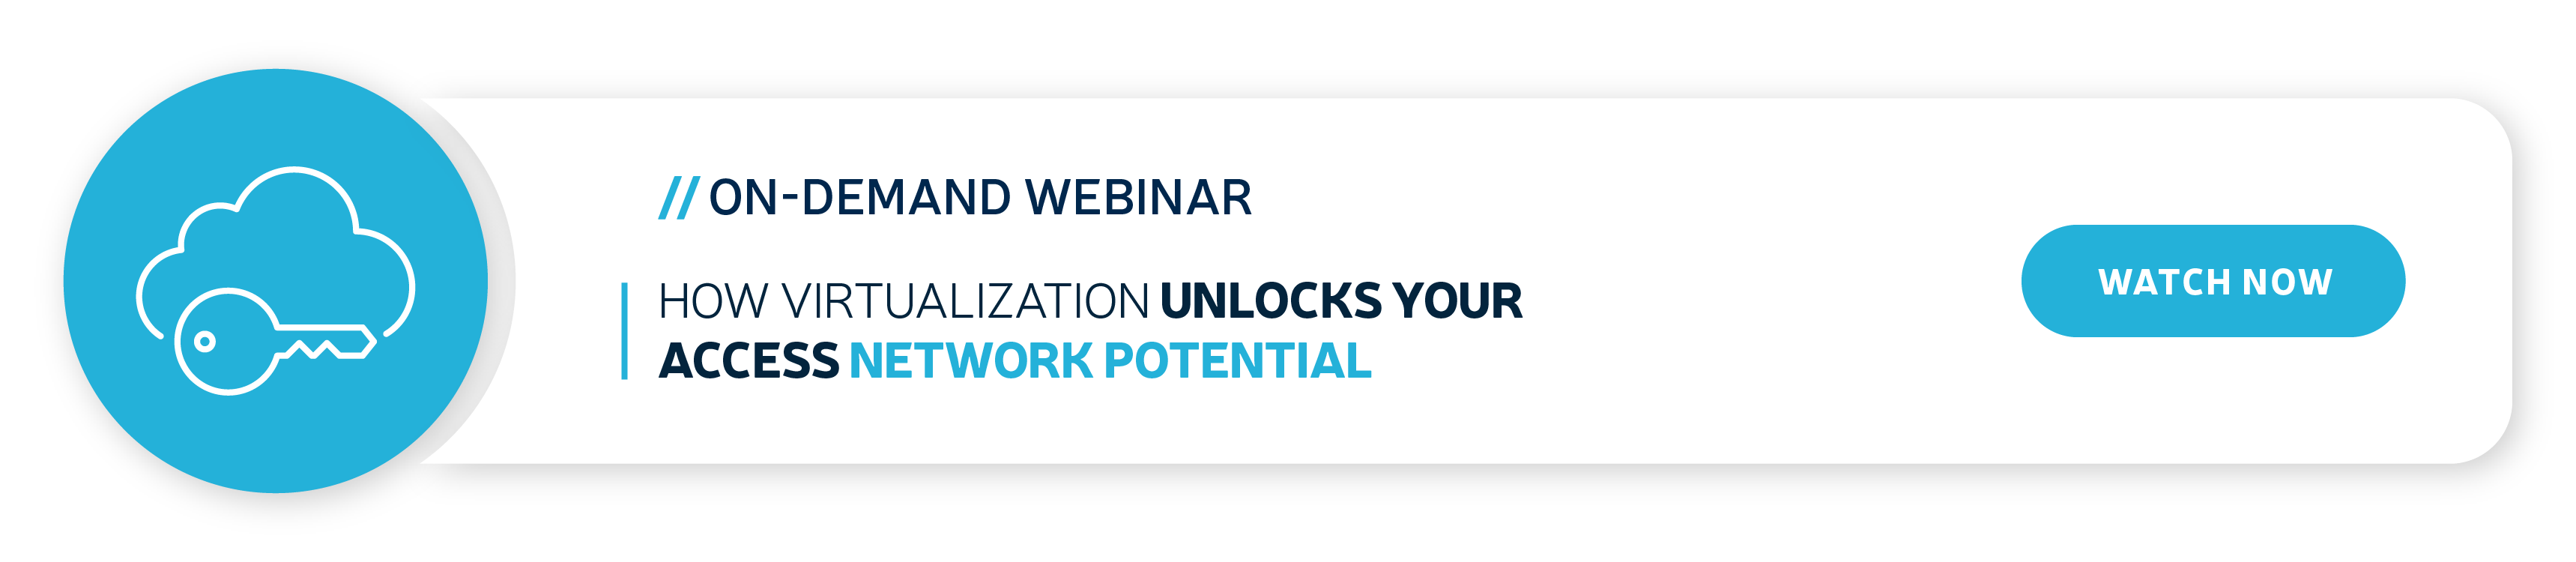 how-virtualization-unlock-your-access-network-potential-on-demand-webinar-blog-banner